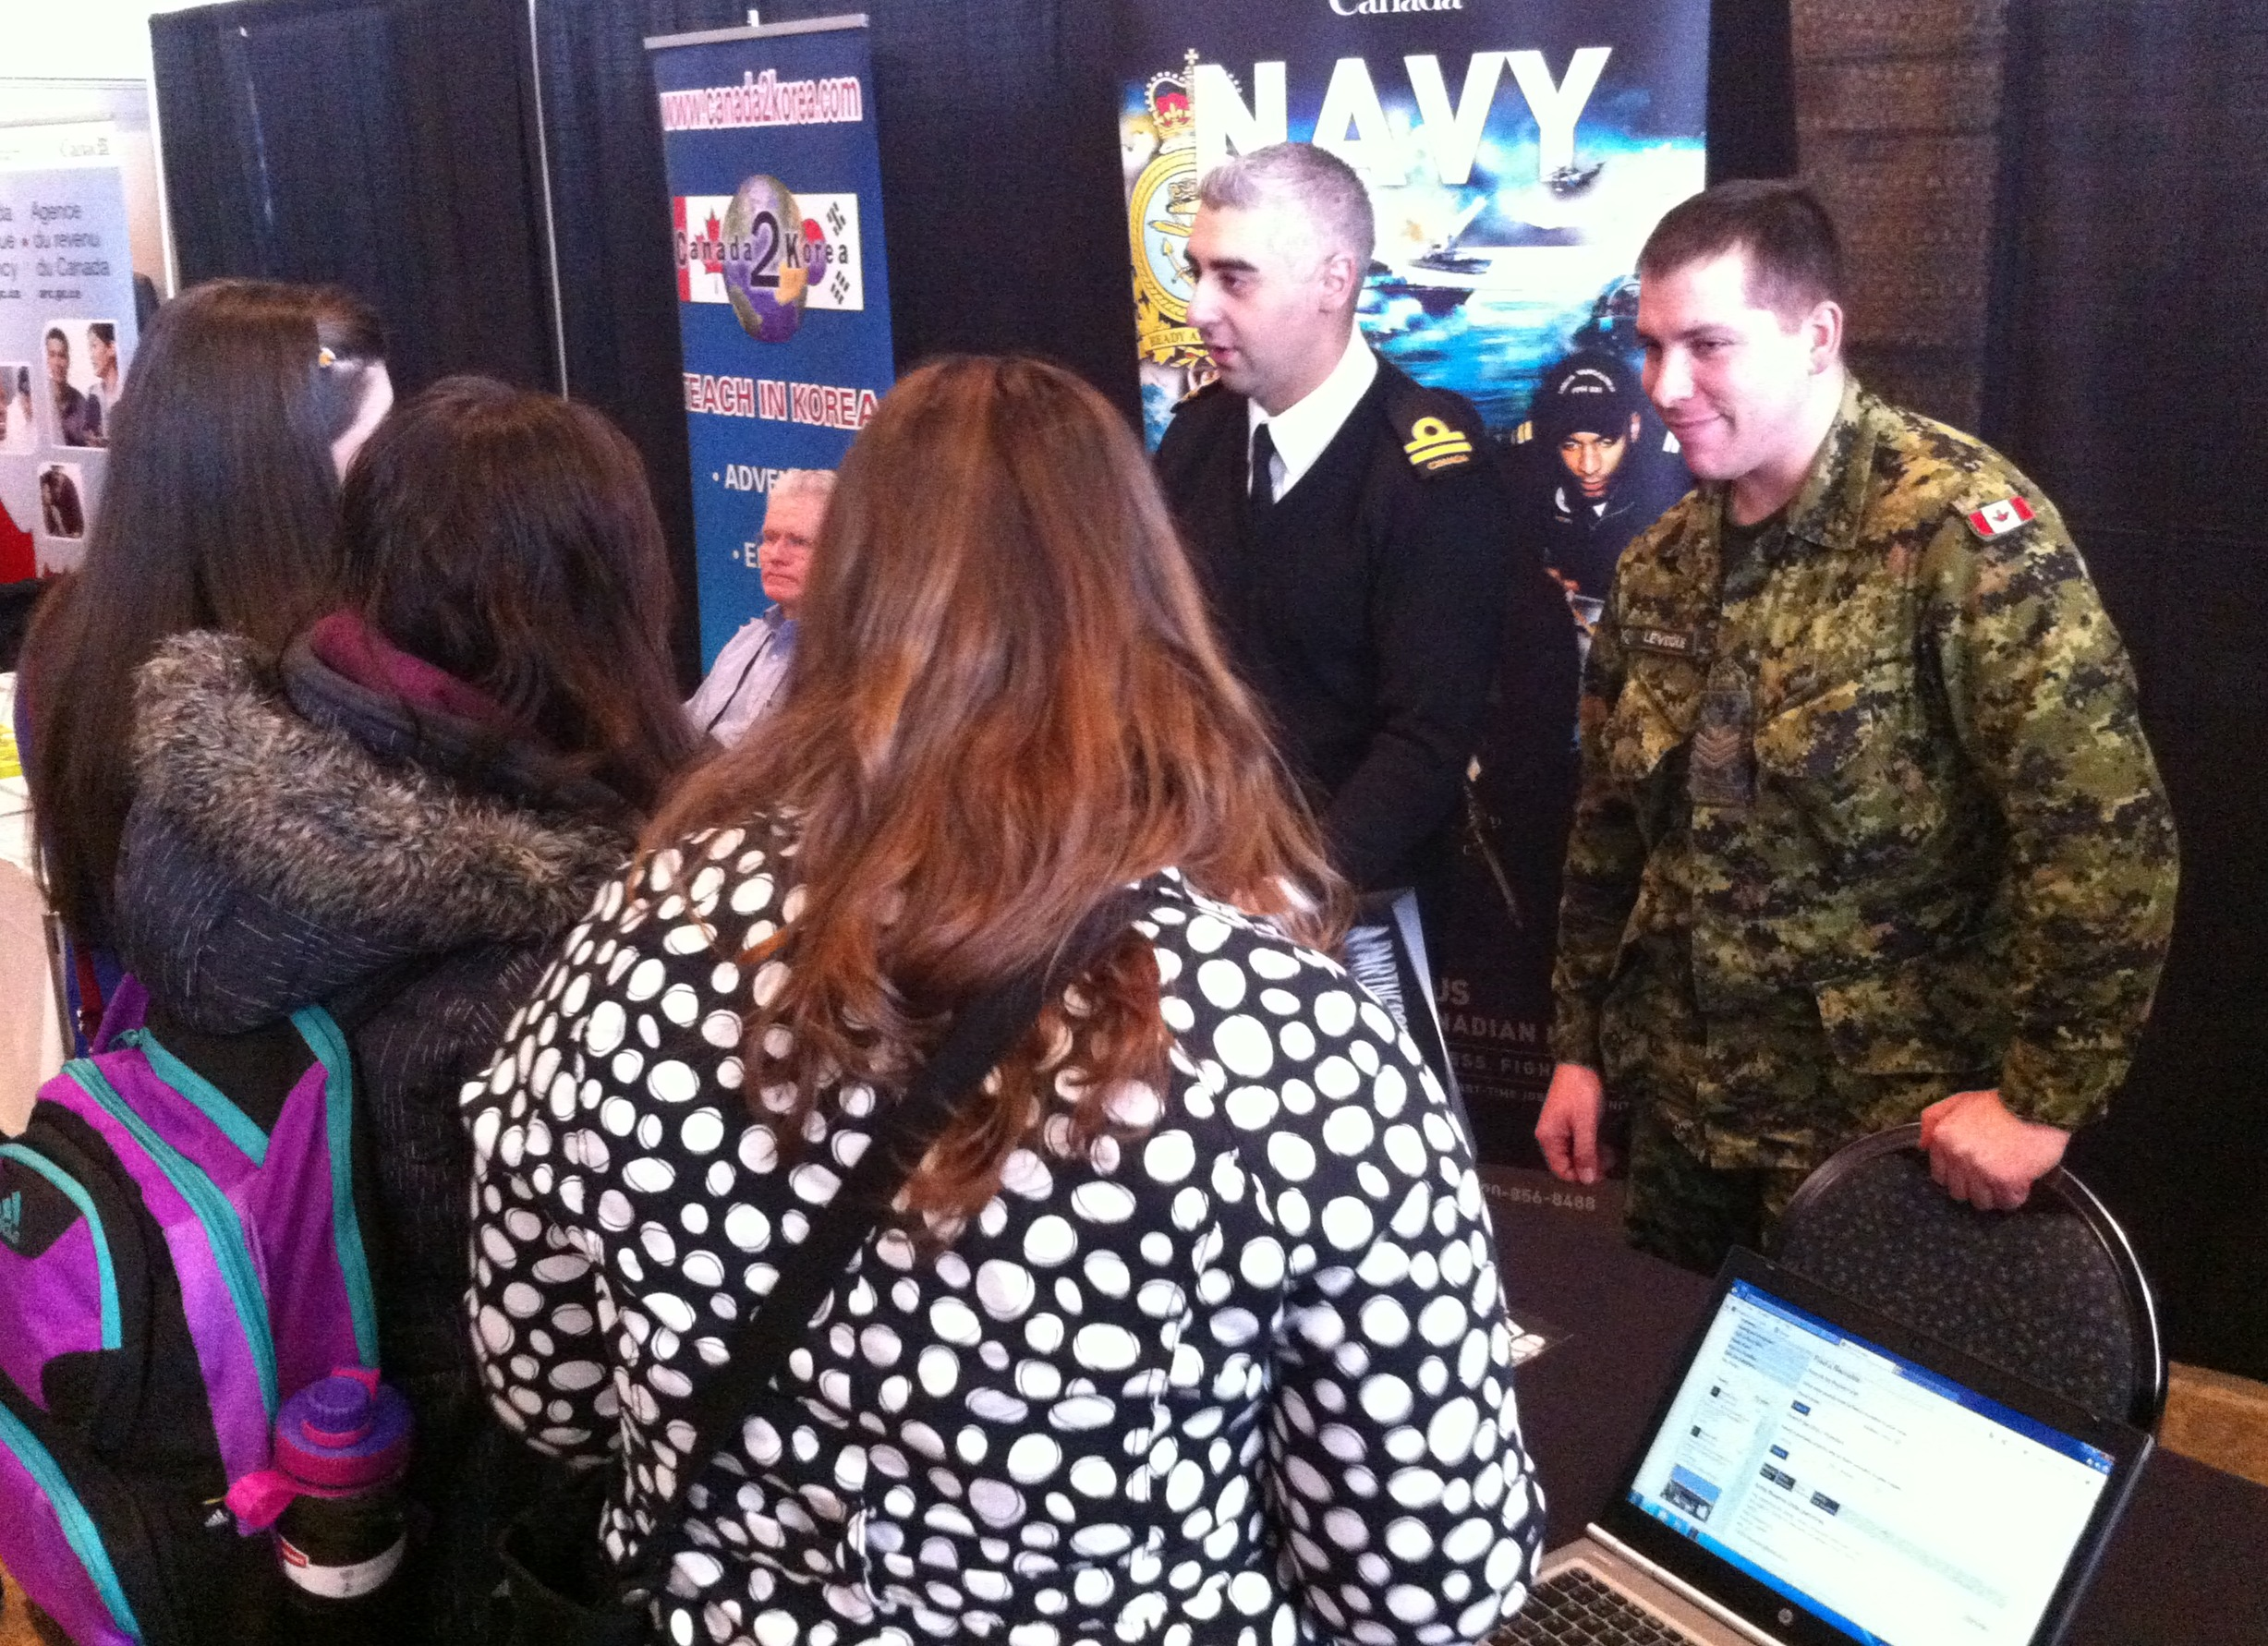 Students visit the Canadian Navy booth at the 16th Annual Job Fair at St. Clair Centre for the Arts in Windsor, January 21, 2015. (Photo by Mike Vlasveld)